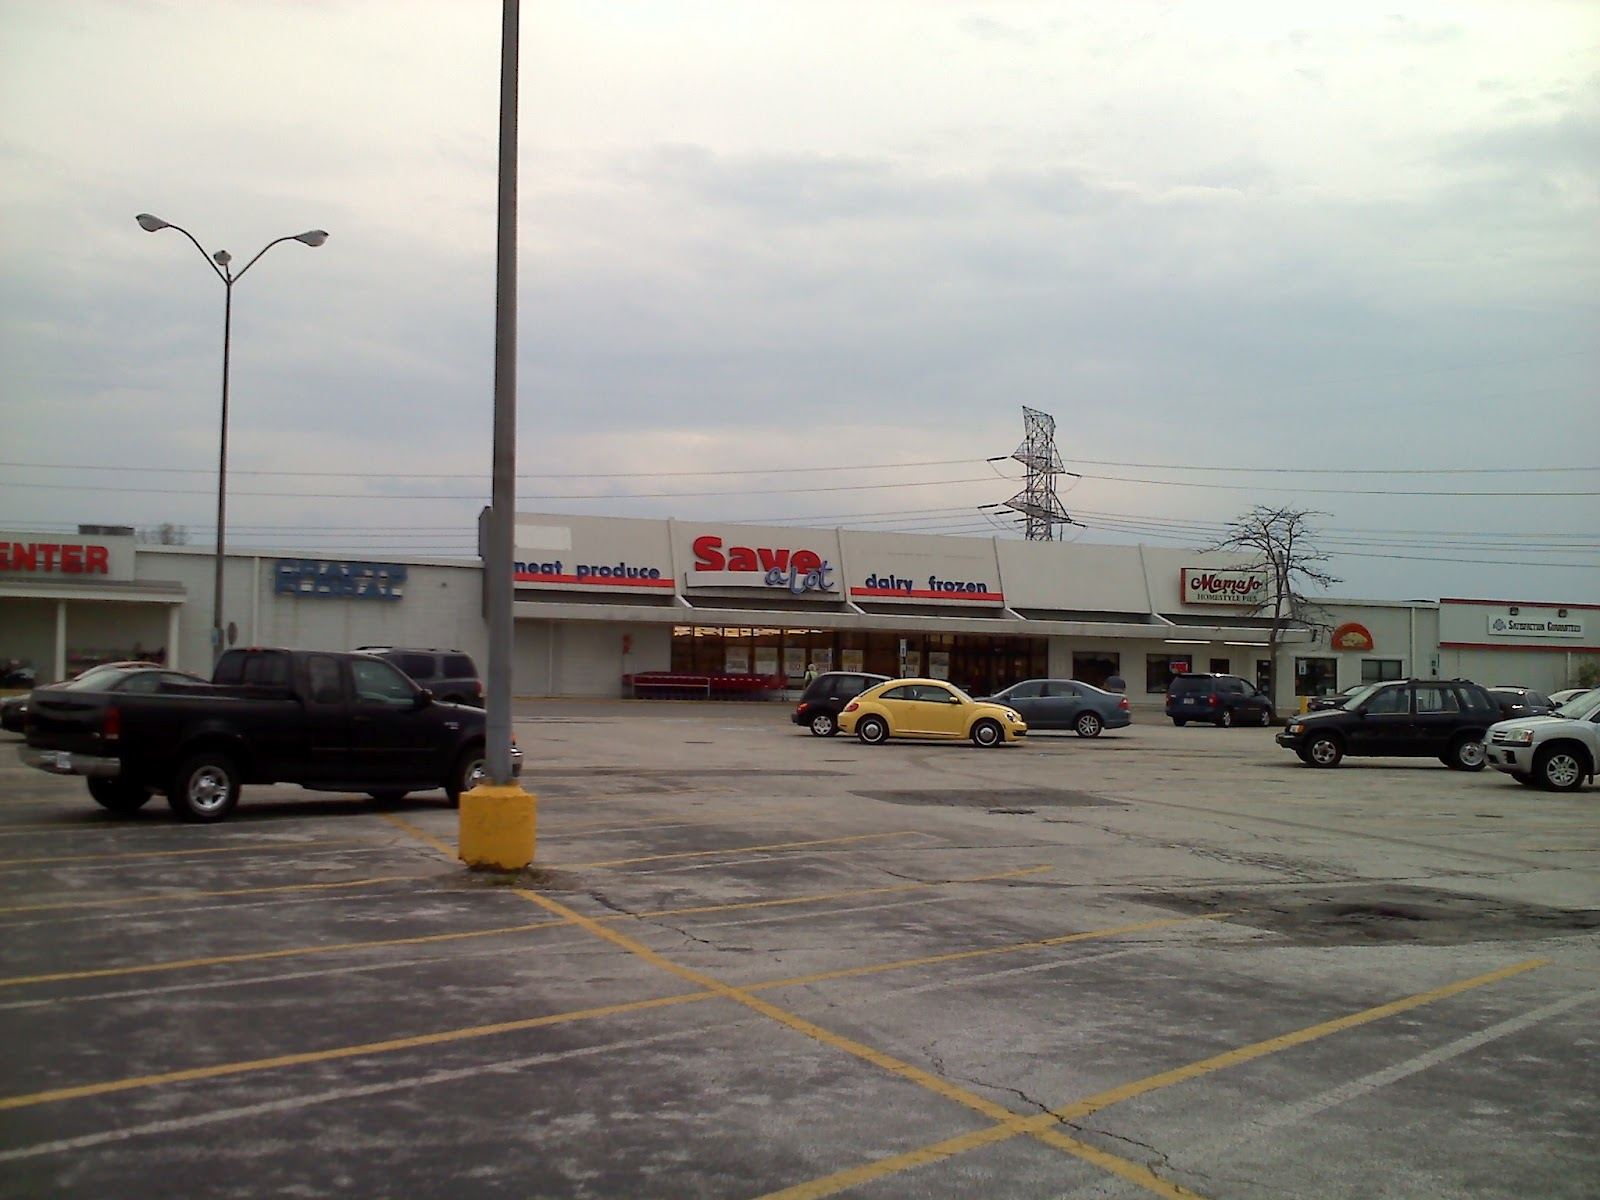 Dead and dying retail former kmart and rini rego in amherst ohio gumiabroncs Gallery